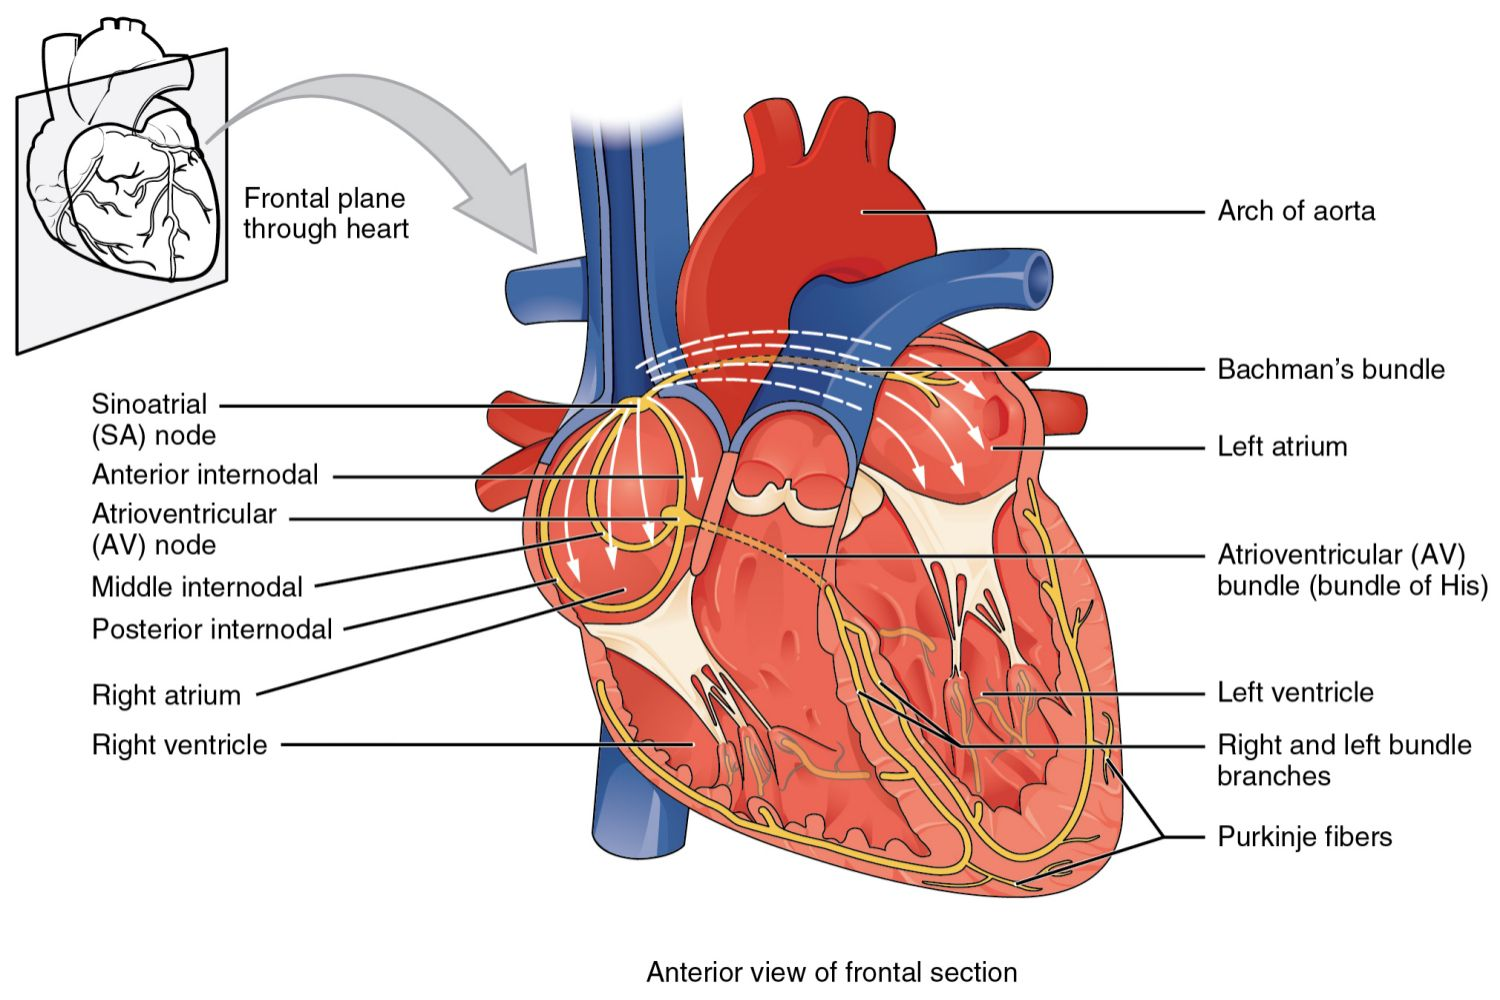 Anatomy of the heart diagram view av and sa nodes electrical system of the heart ccuart Images